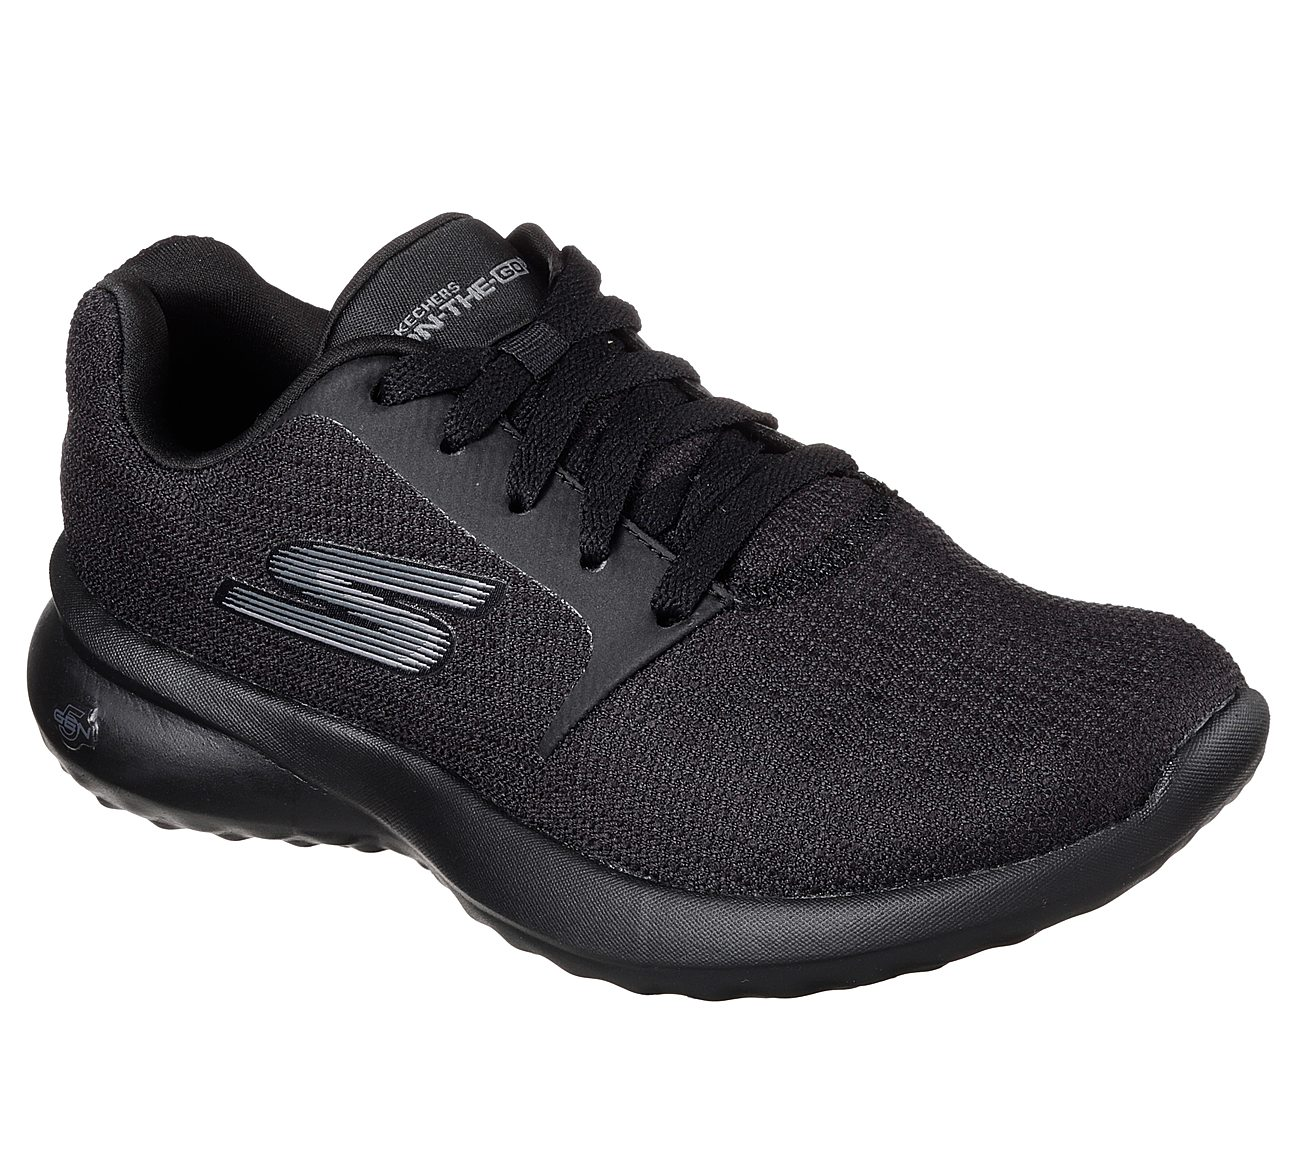 buy skechers skechers on the go city 3 optimize skechers performance shoes only. Black Bedroom Furniture Sets. Home Design Ideas